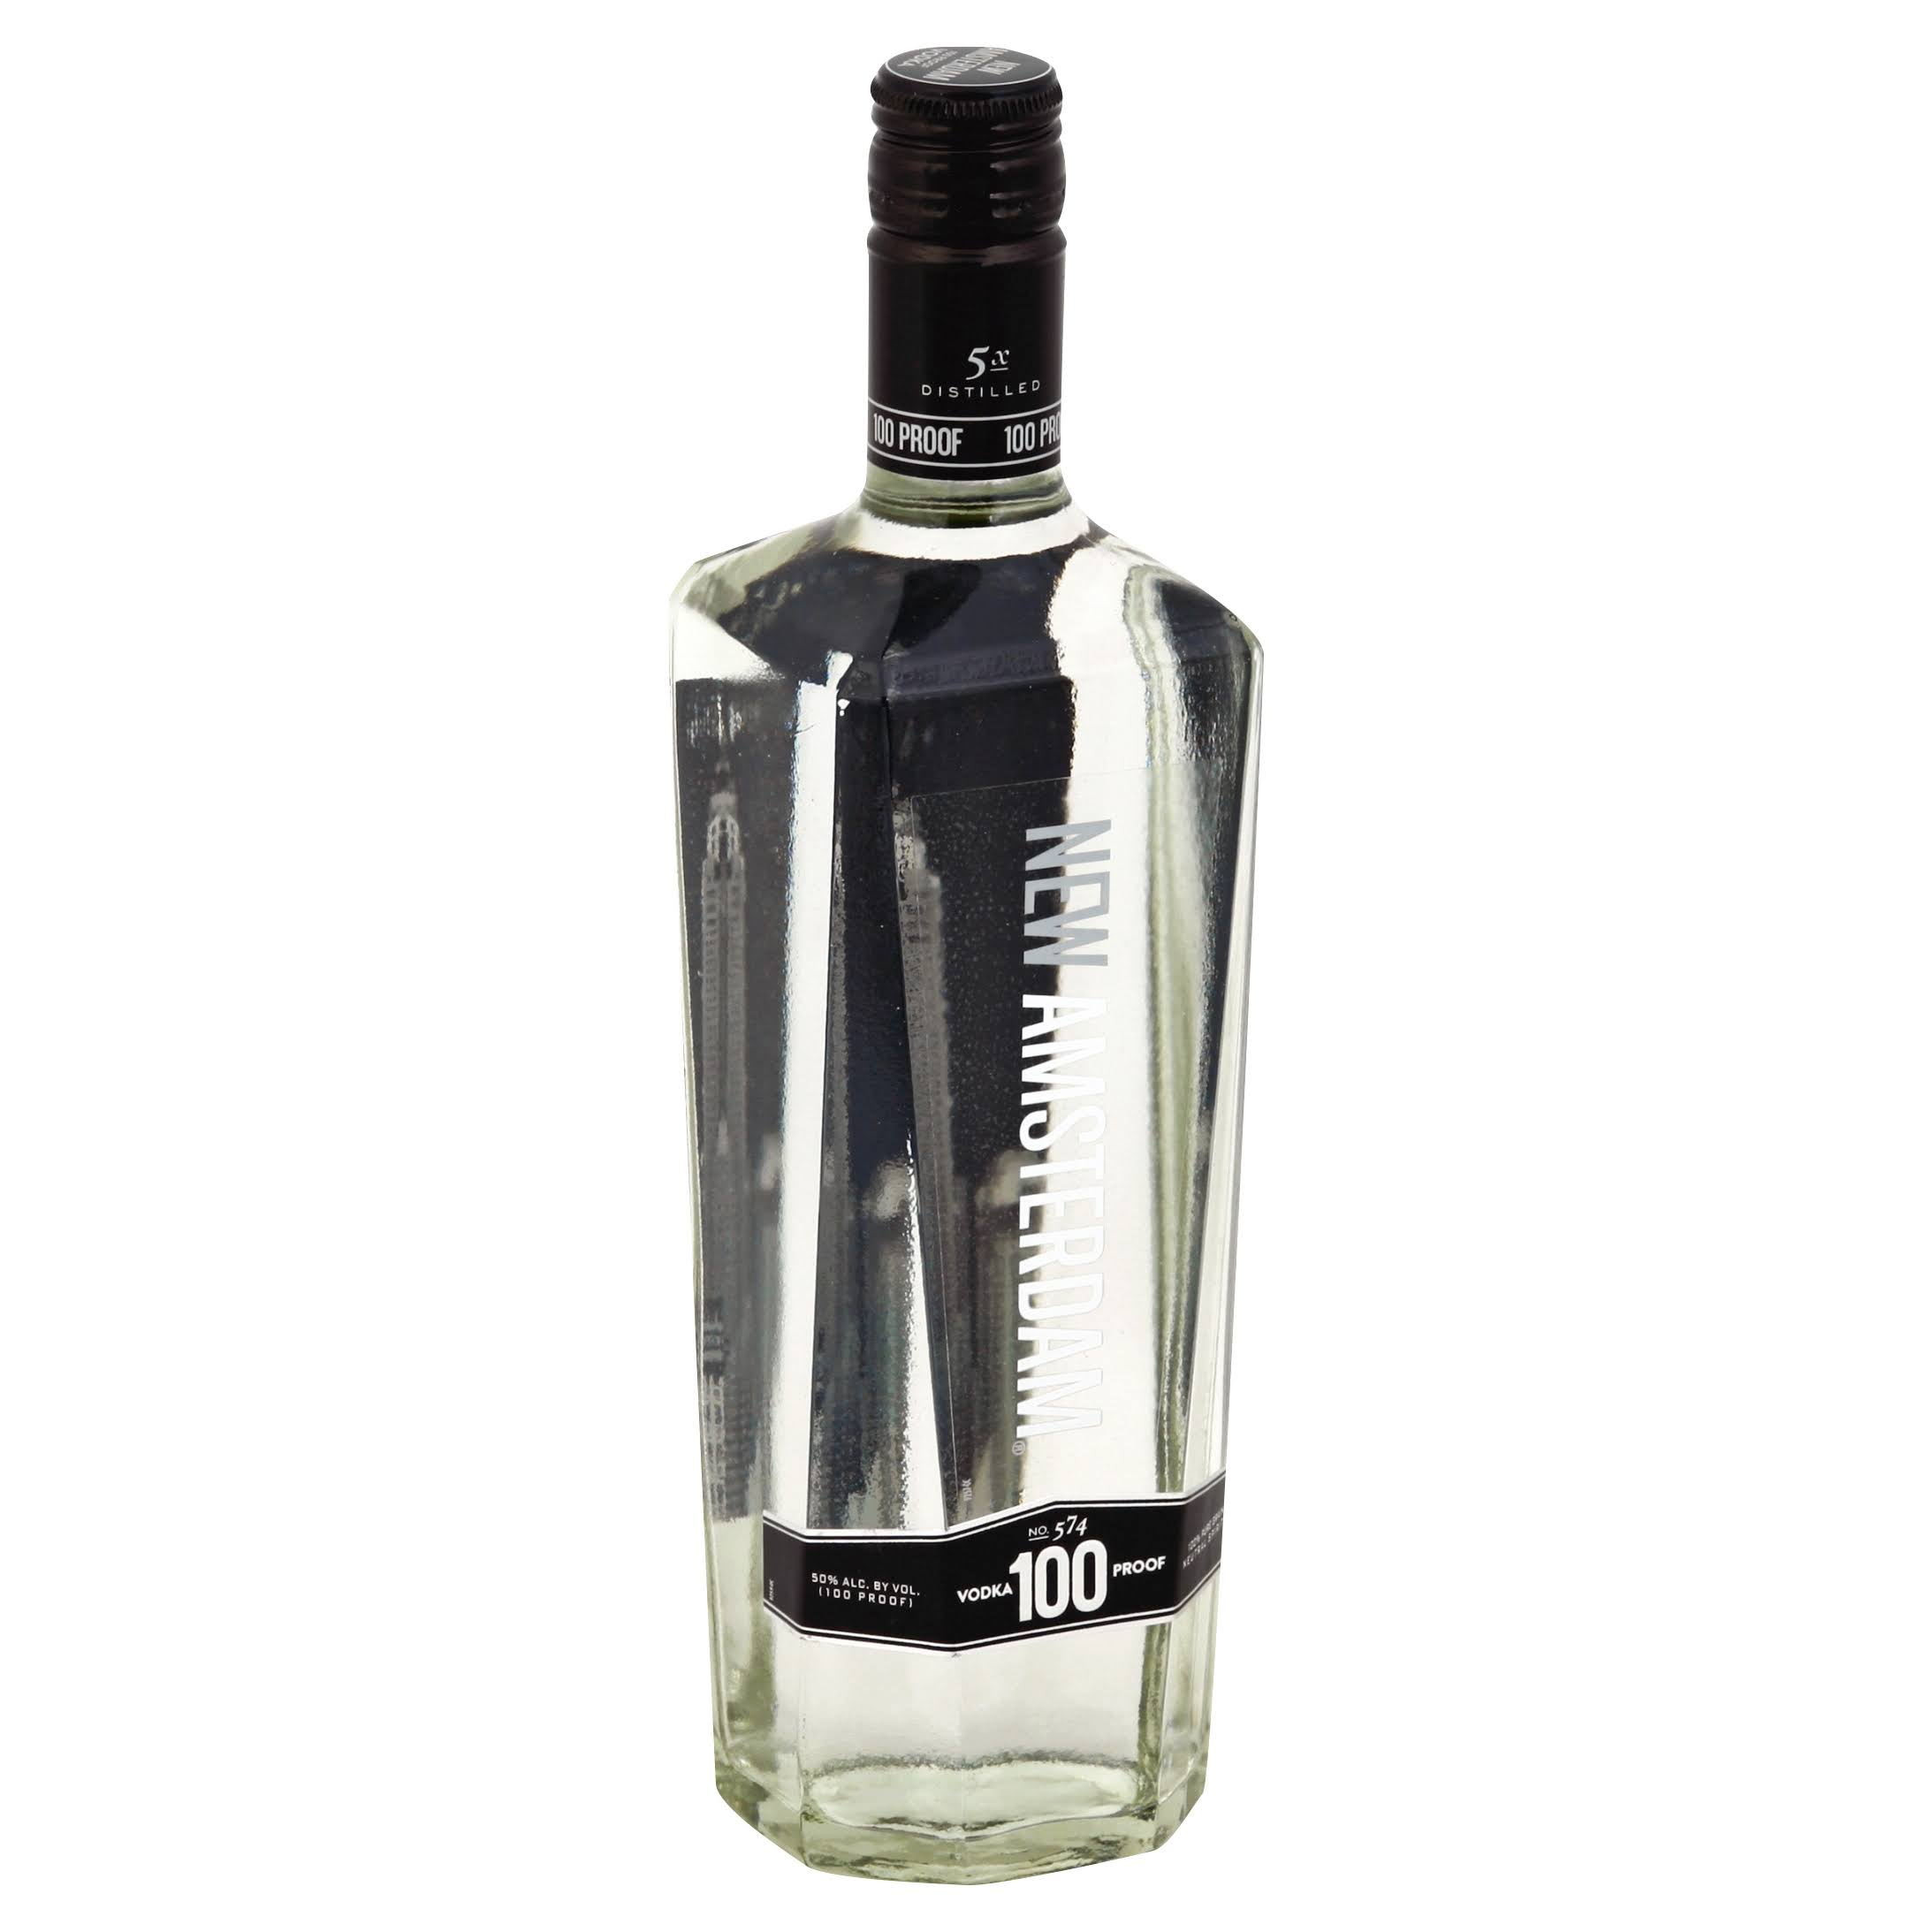 New Amsterdam Vodka, No. 574, 100 Proof - 750 ml